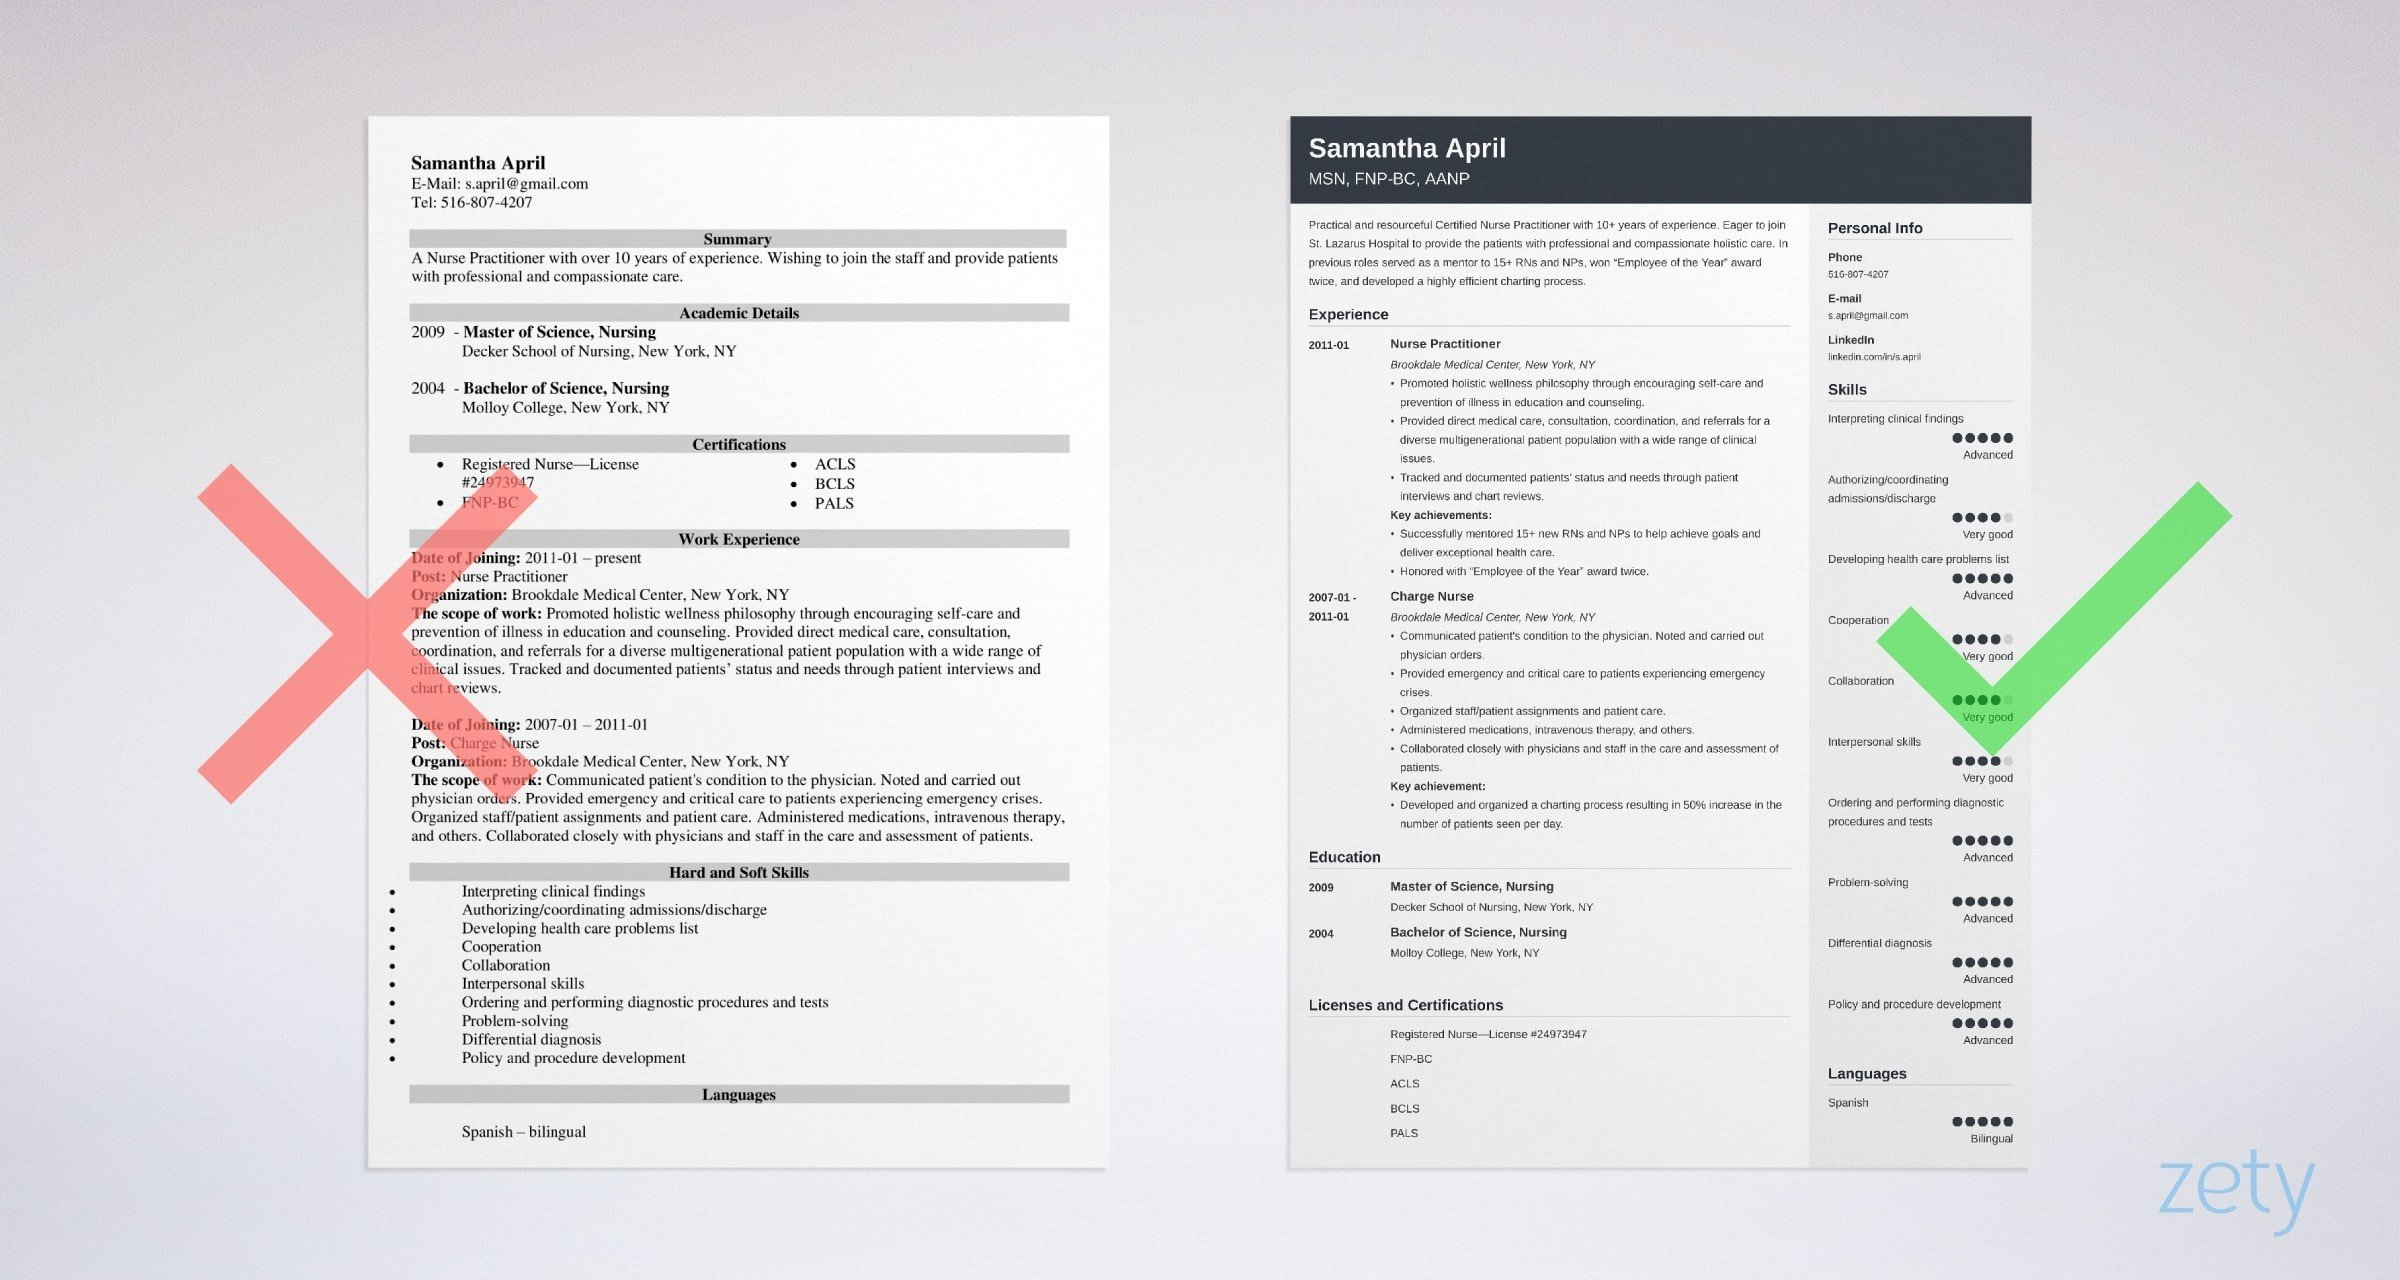 nurse practitioner resume examples template guide for np fnp sample new example mail or Resume Sample Resume For New Nurse Practitioner